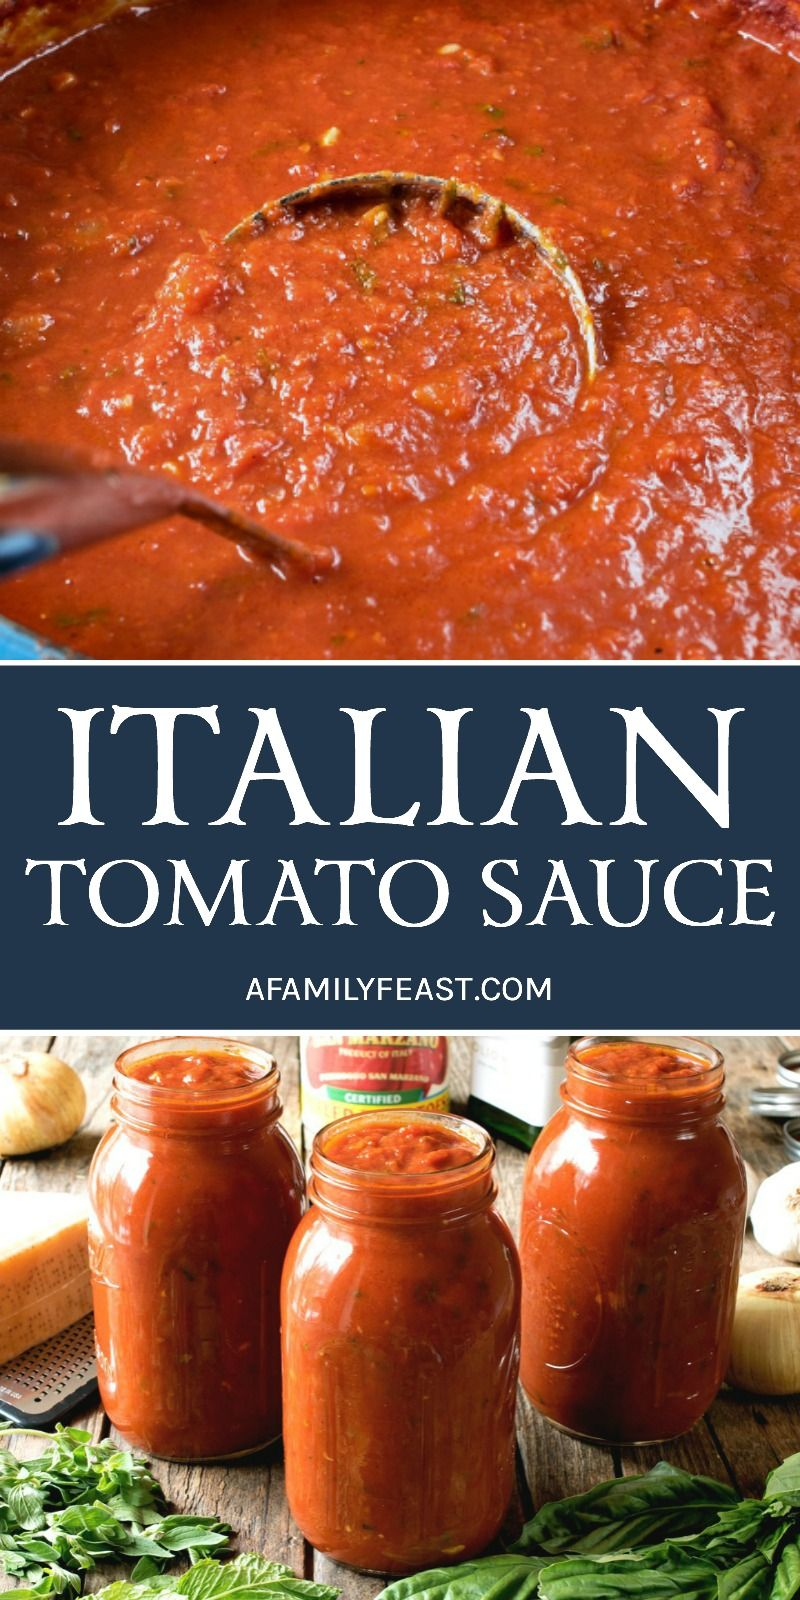 An Authentic And Delicious Italian Tomato Sauce That Has Been Passed Down Through Generations So Italian Tomato Sauce Best Italian Recipes Pasta Sauce Recipes